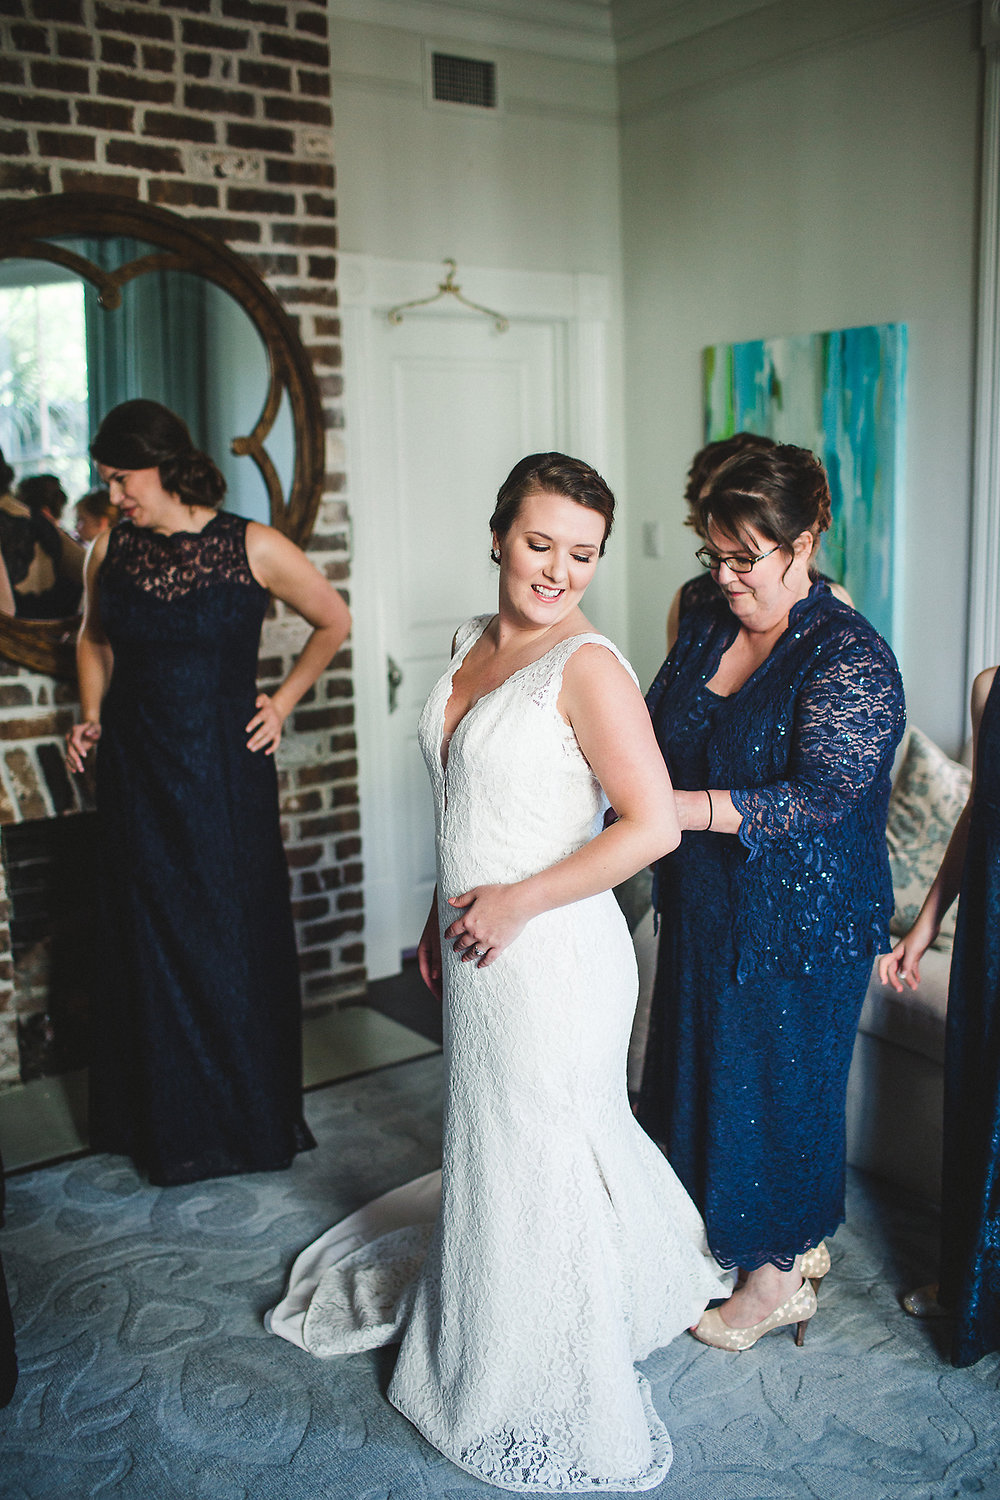 Izzy Hudgins Wedding Photography bride getting ready